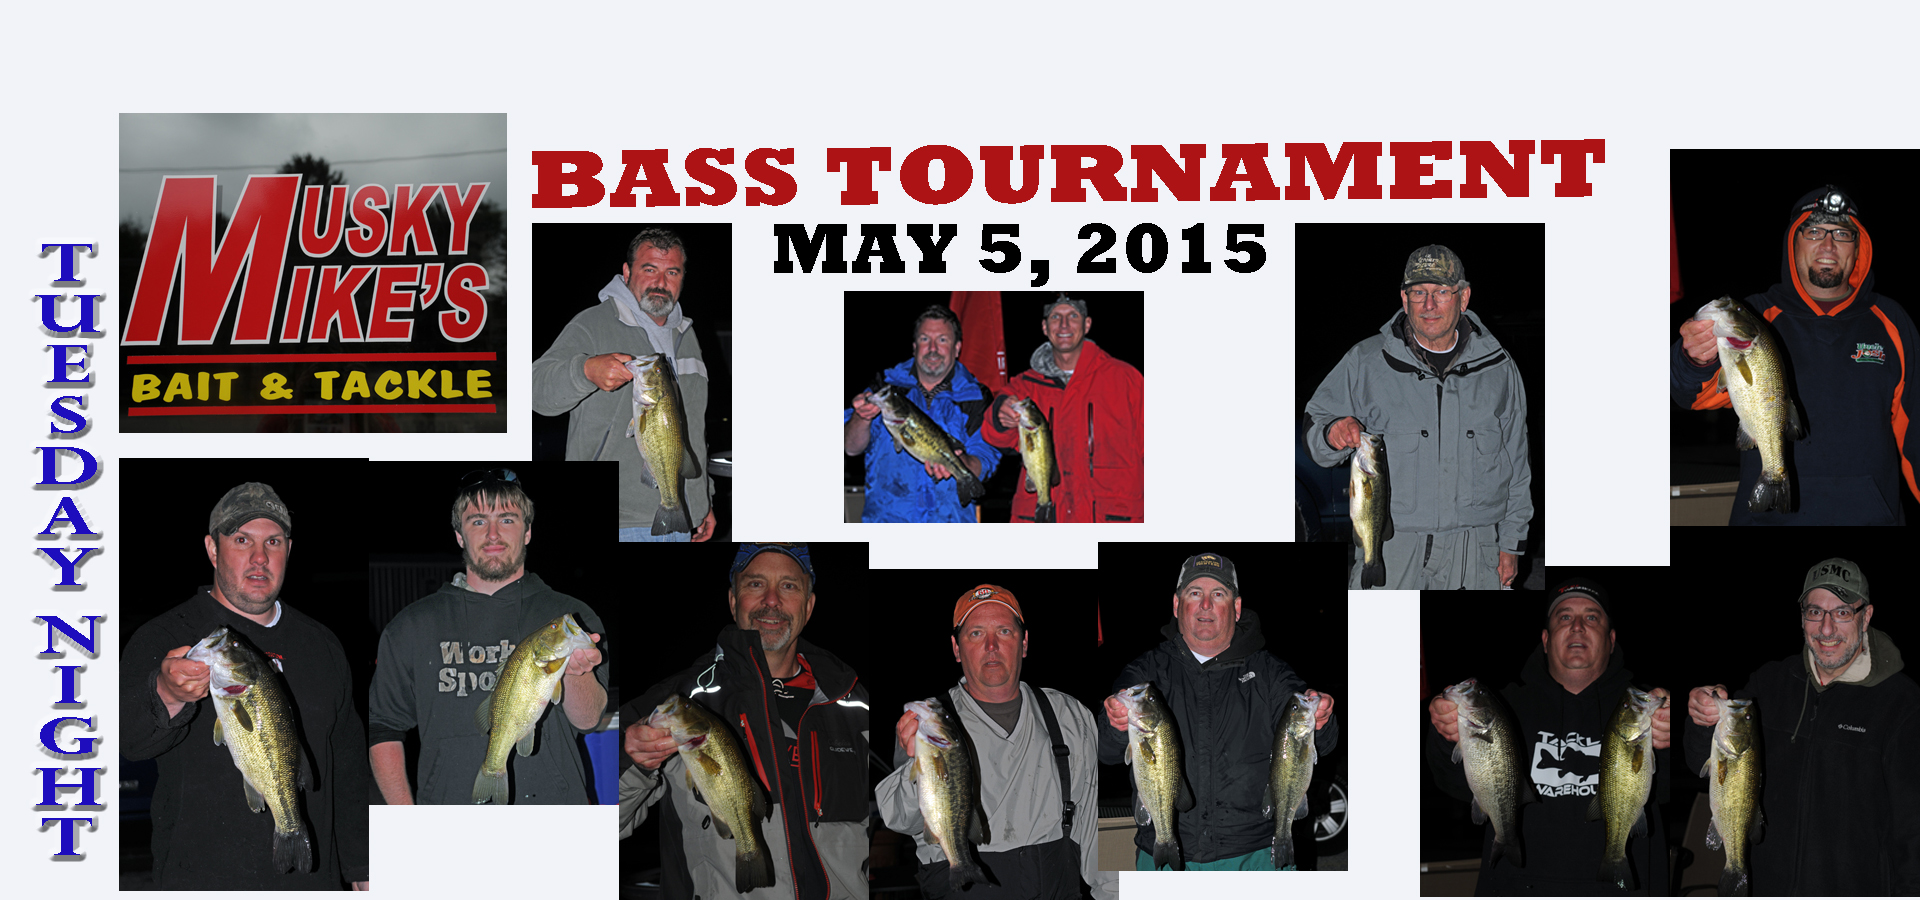 BASS TOURNAMENT MAY